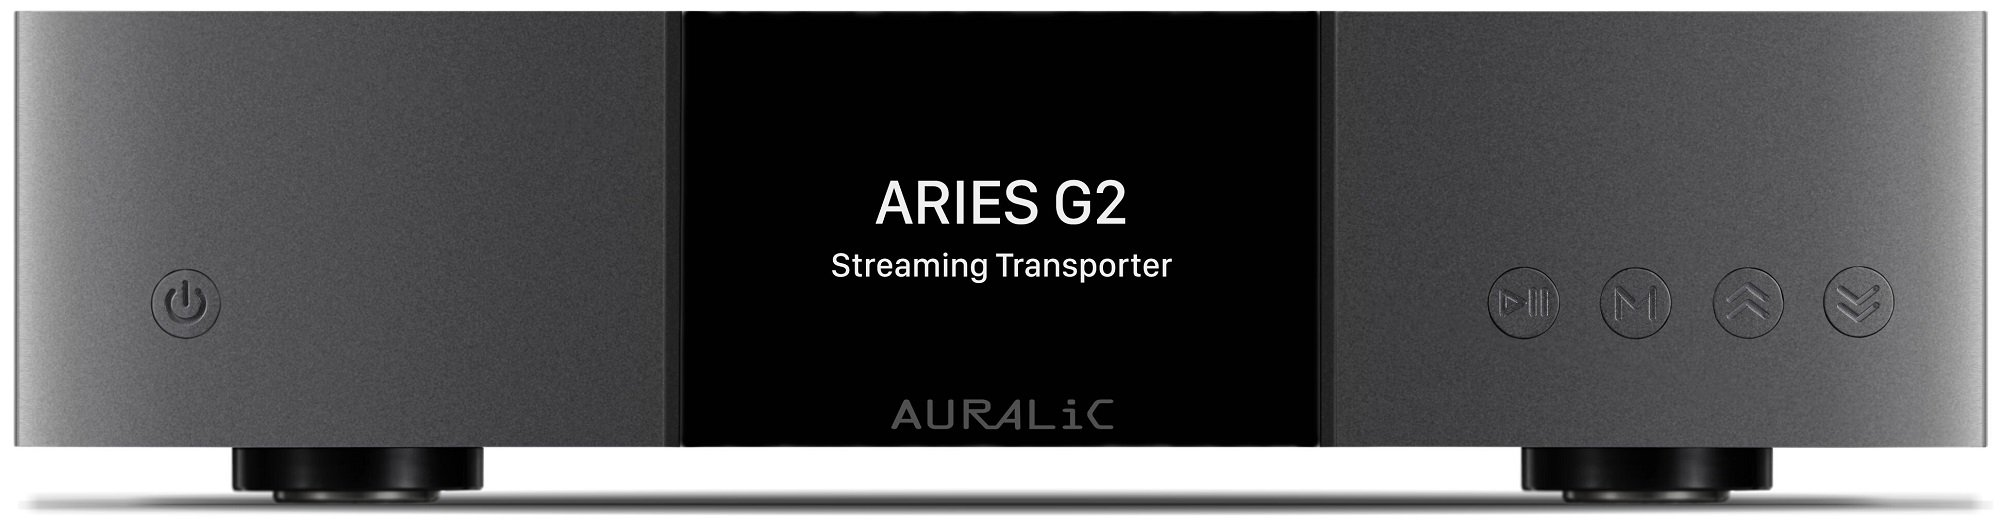 AURALiC ARIES G2 Ultimate wireless Streamer for your DAC by AURALiC (Image #2)